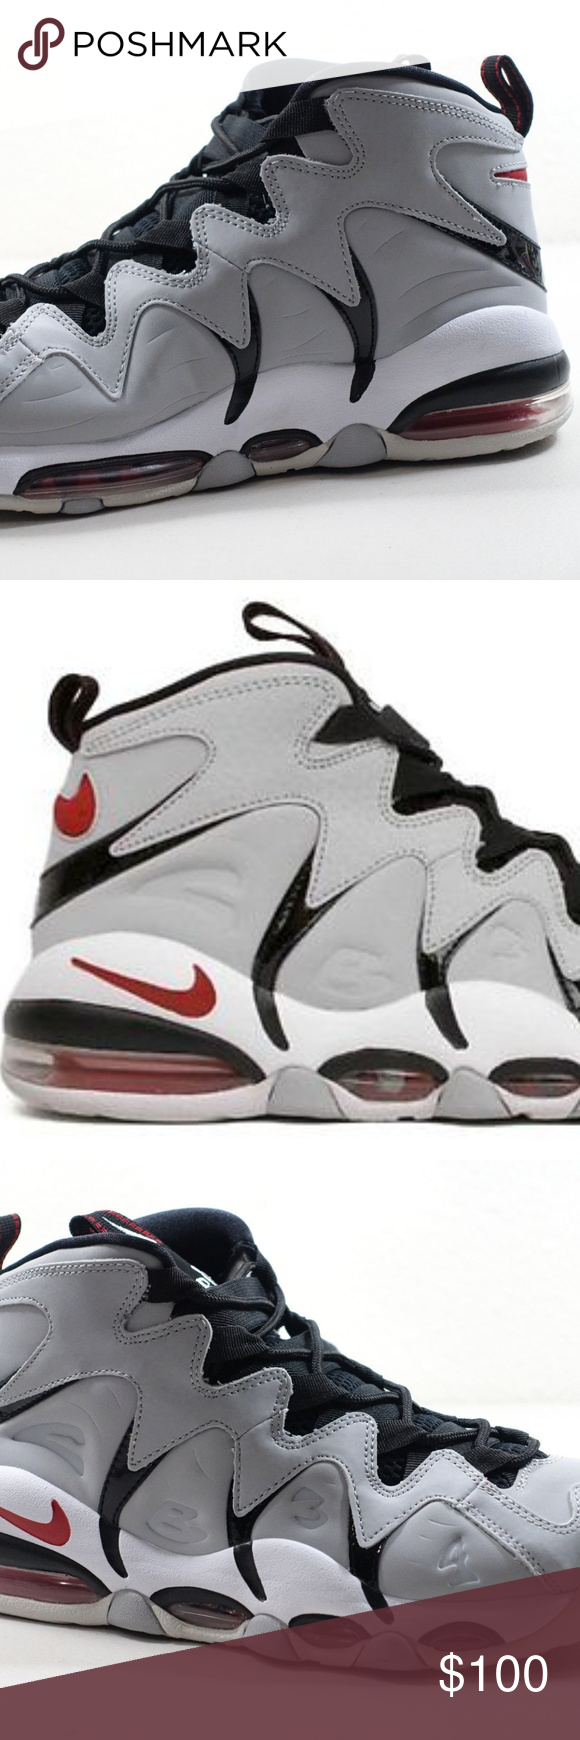 Nike Men's Air Max Cb34 Basketball Shoe 10